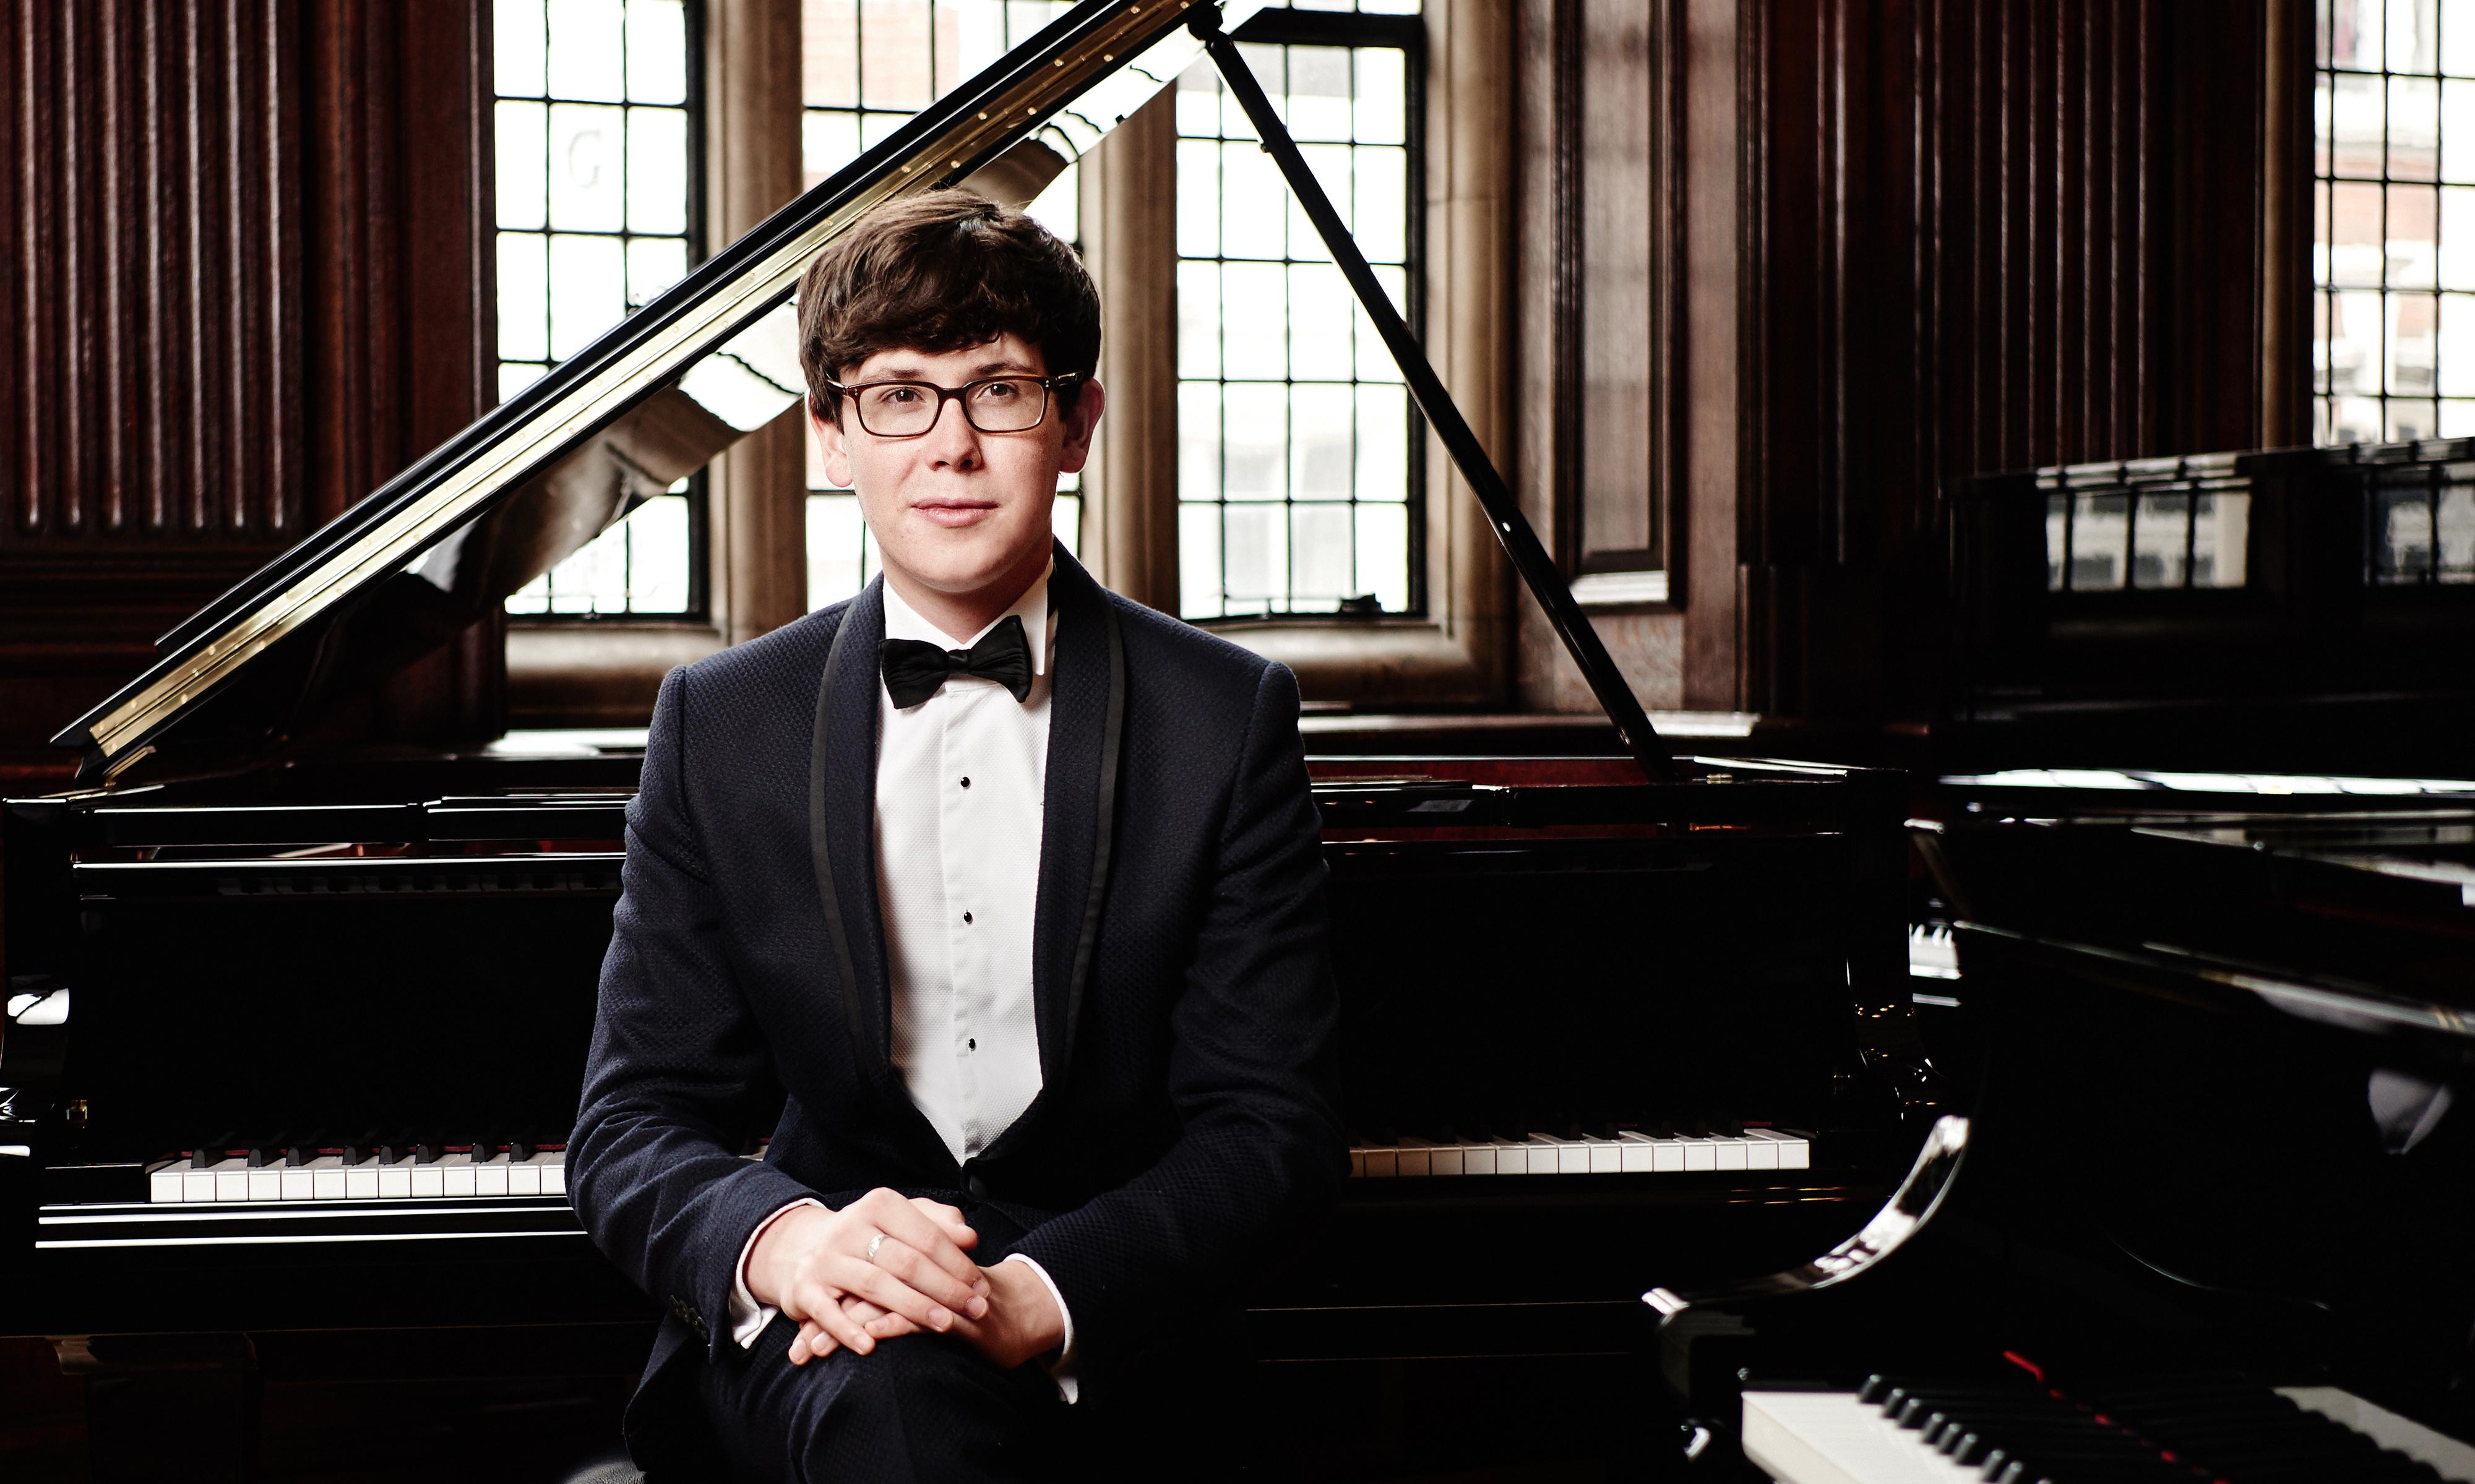 Home listening: a good week for keyboard wizards